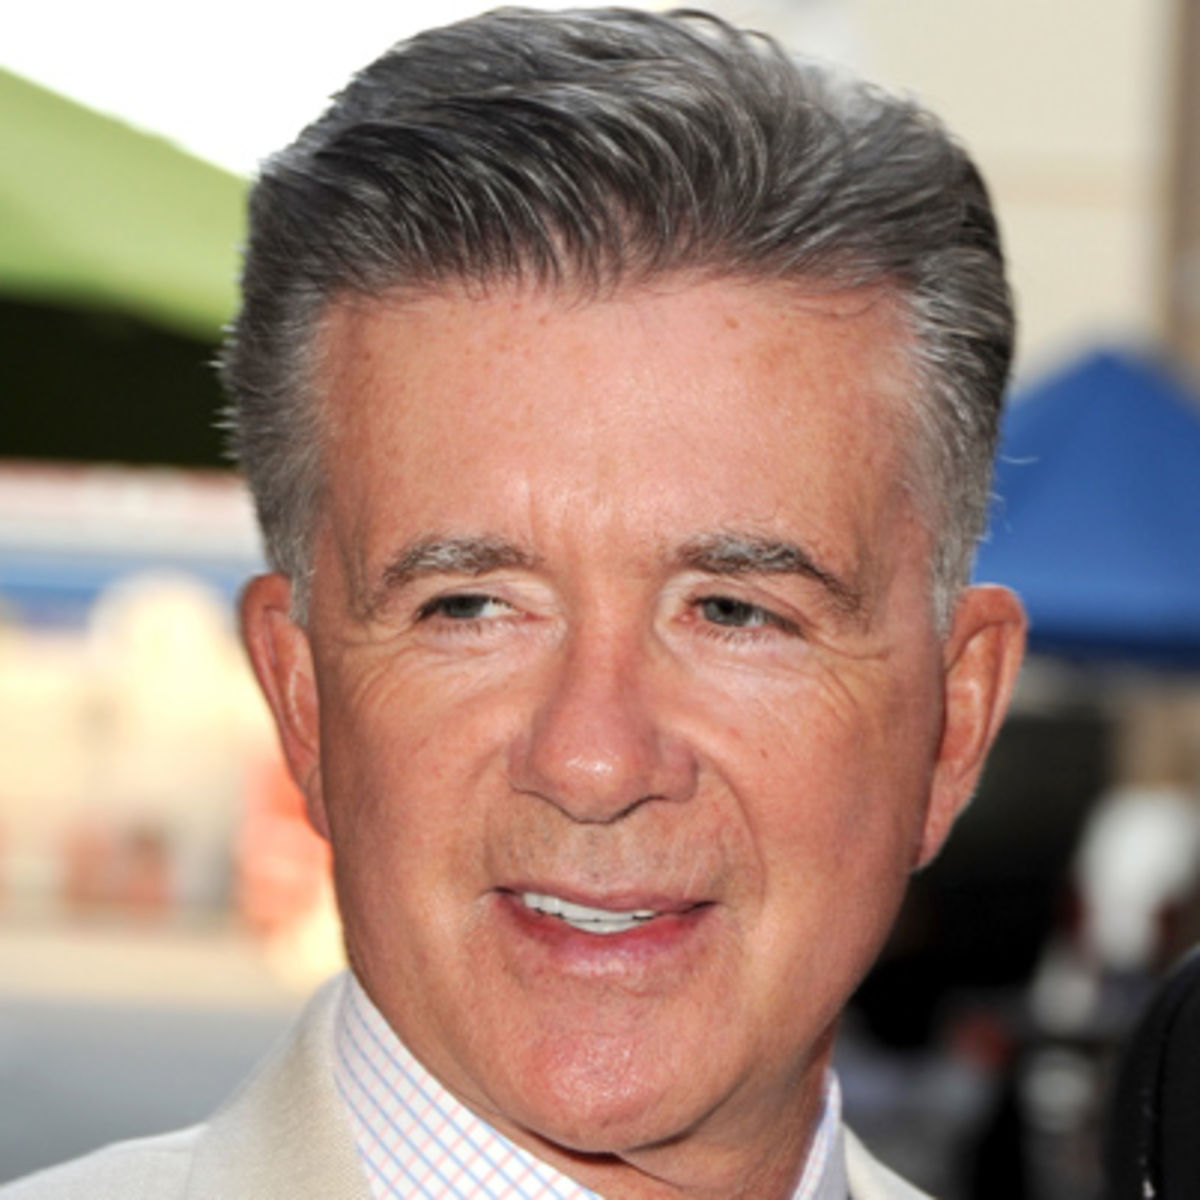 1200x1200 - Alan Thicke Wallpapers 6